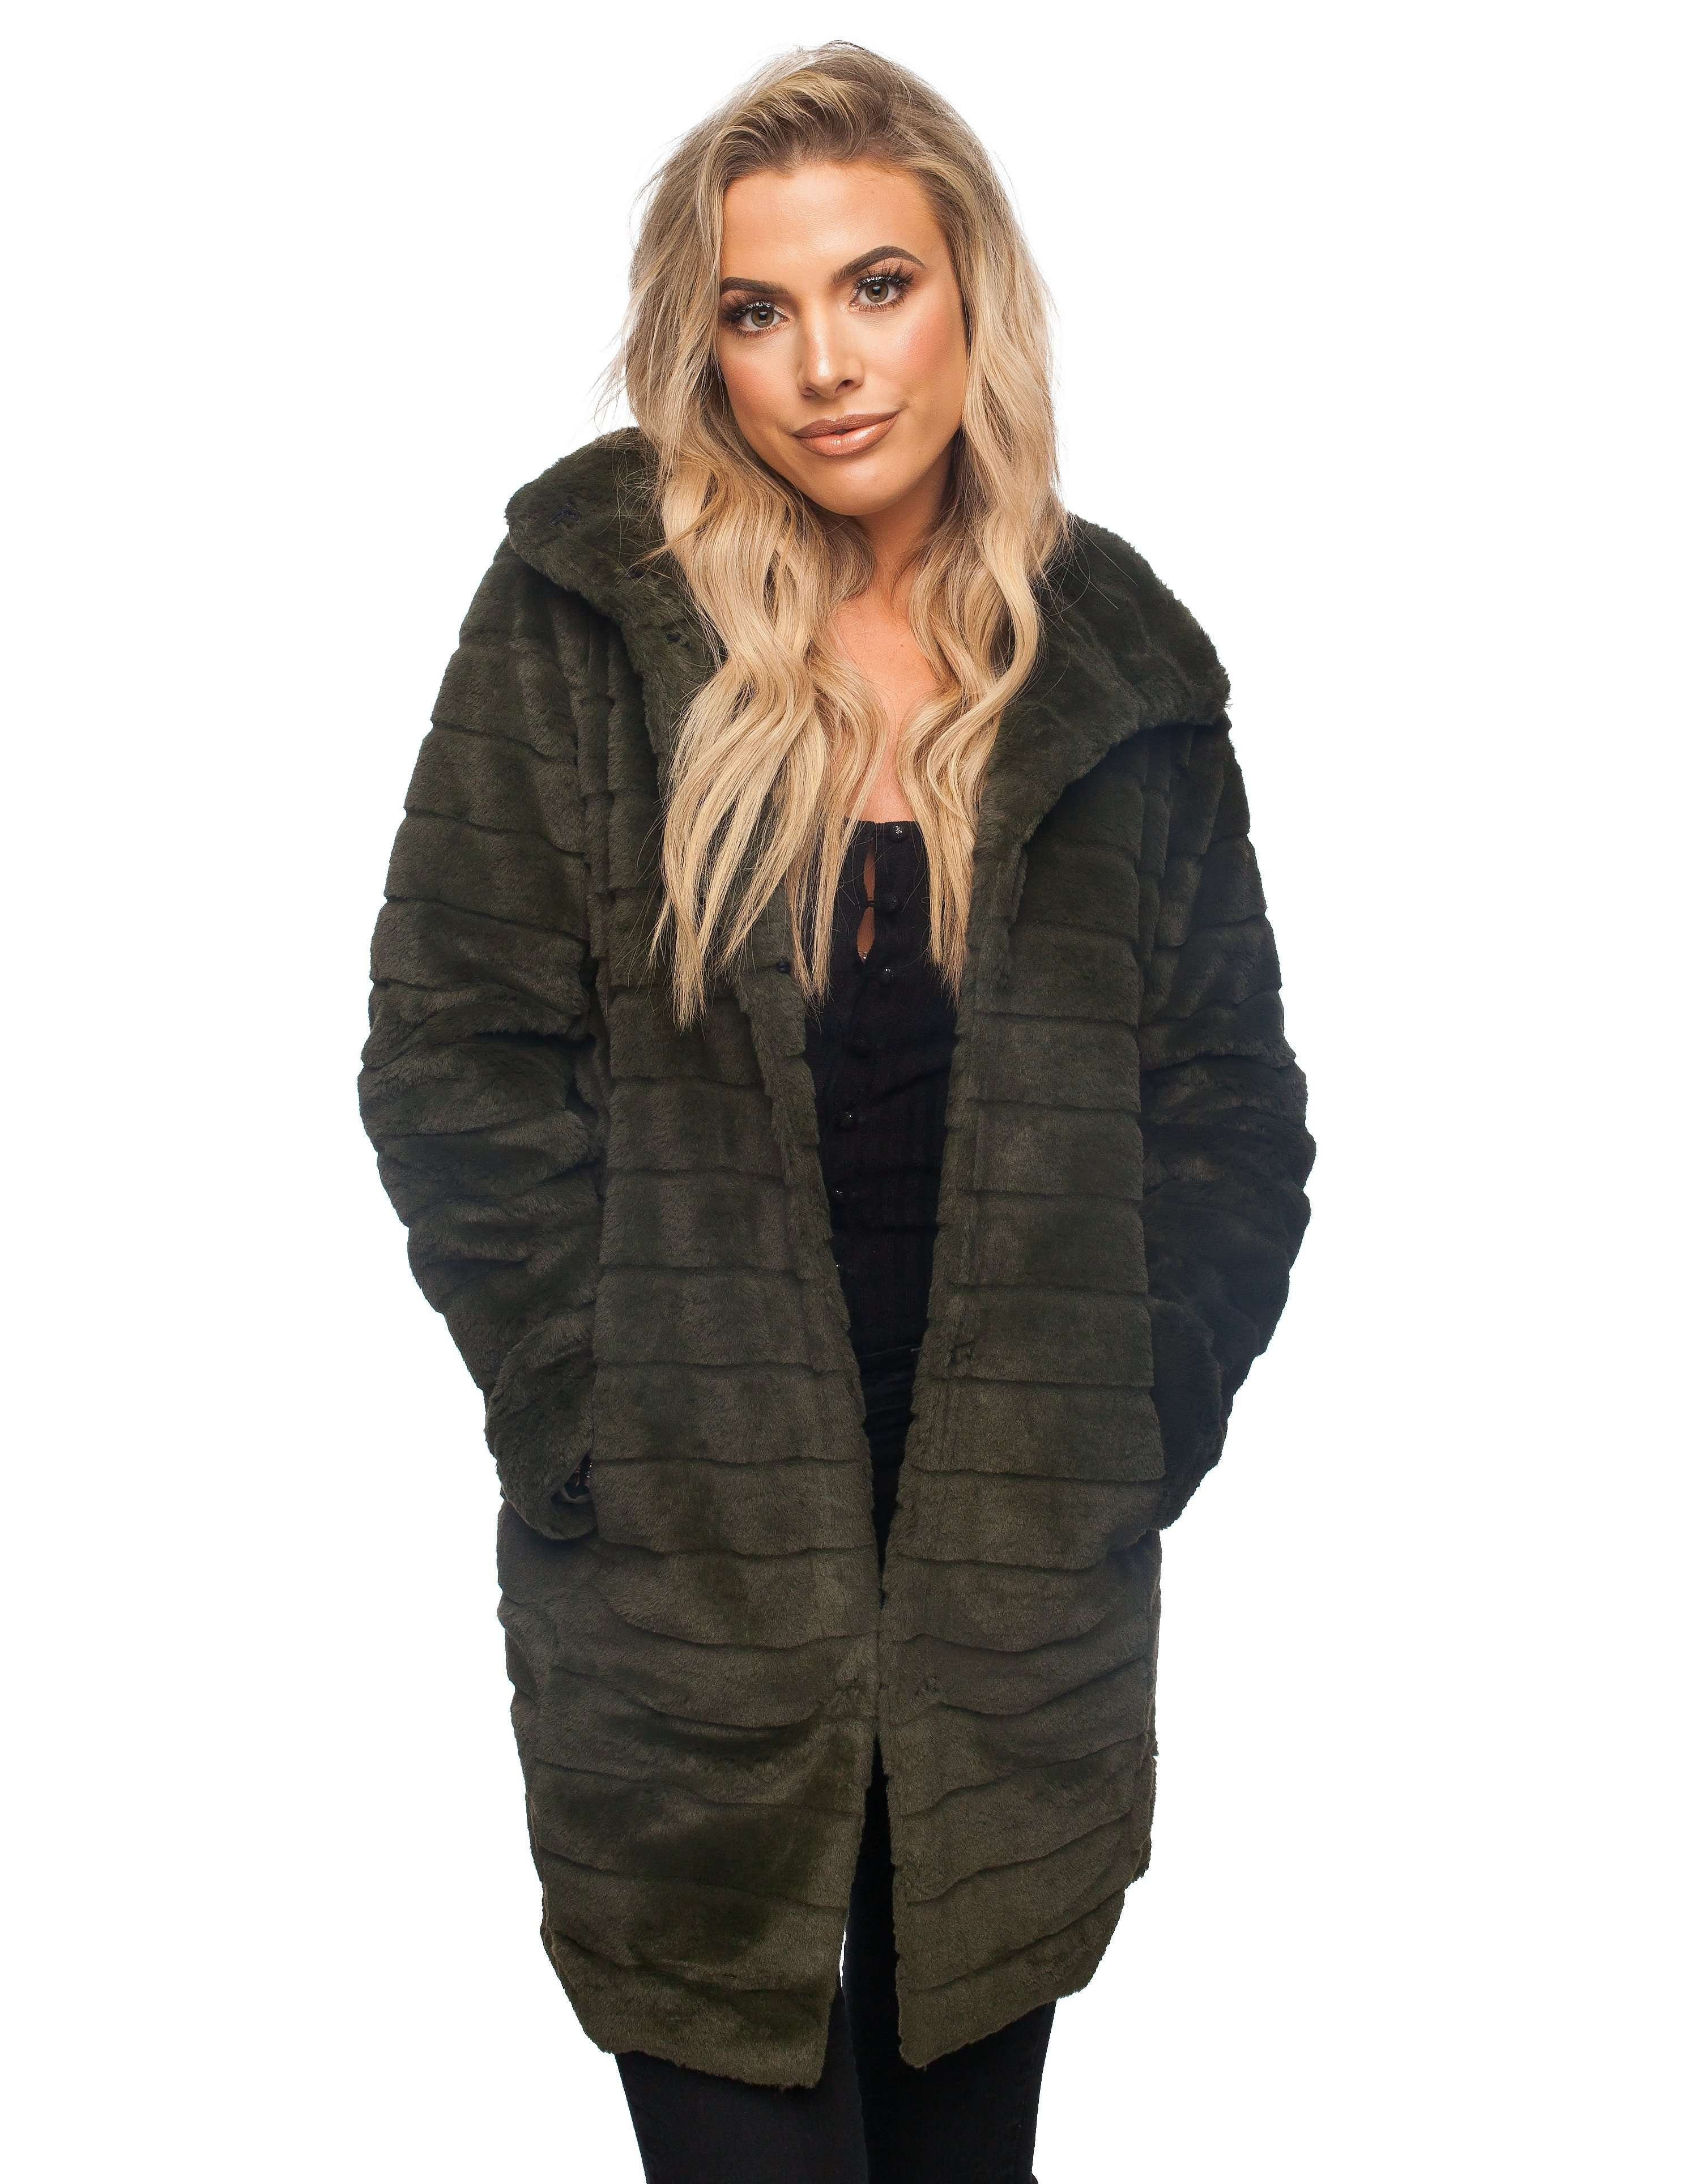 BuddyLove_Vargas_Coat__Olive__Small